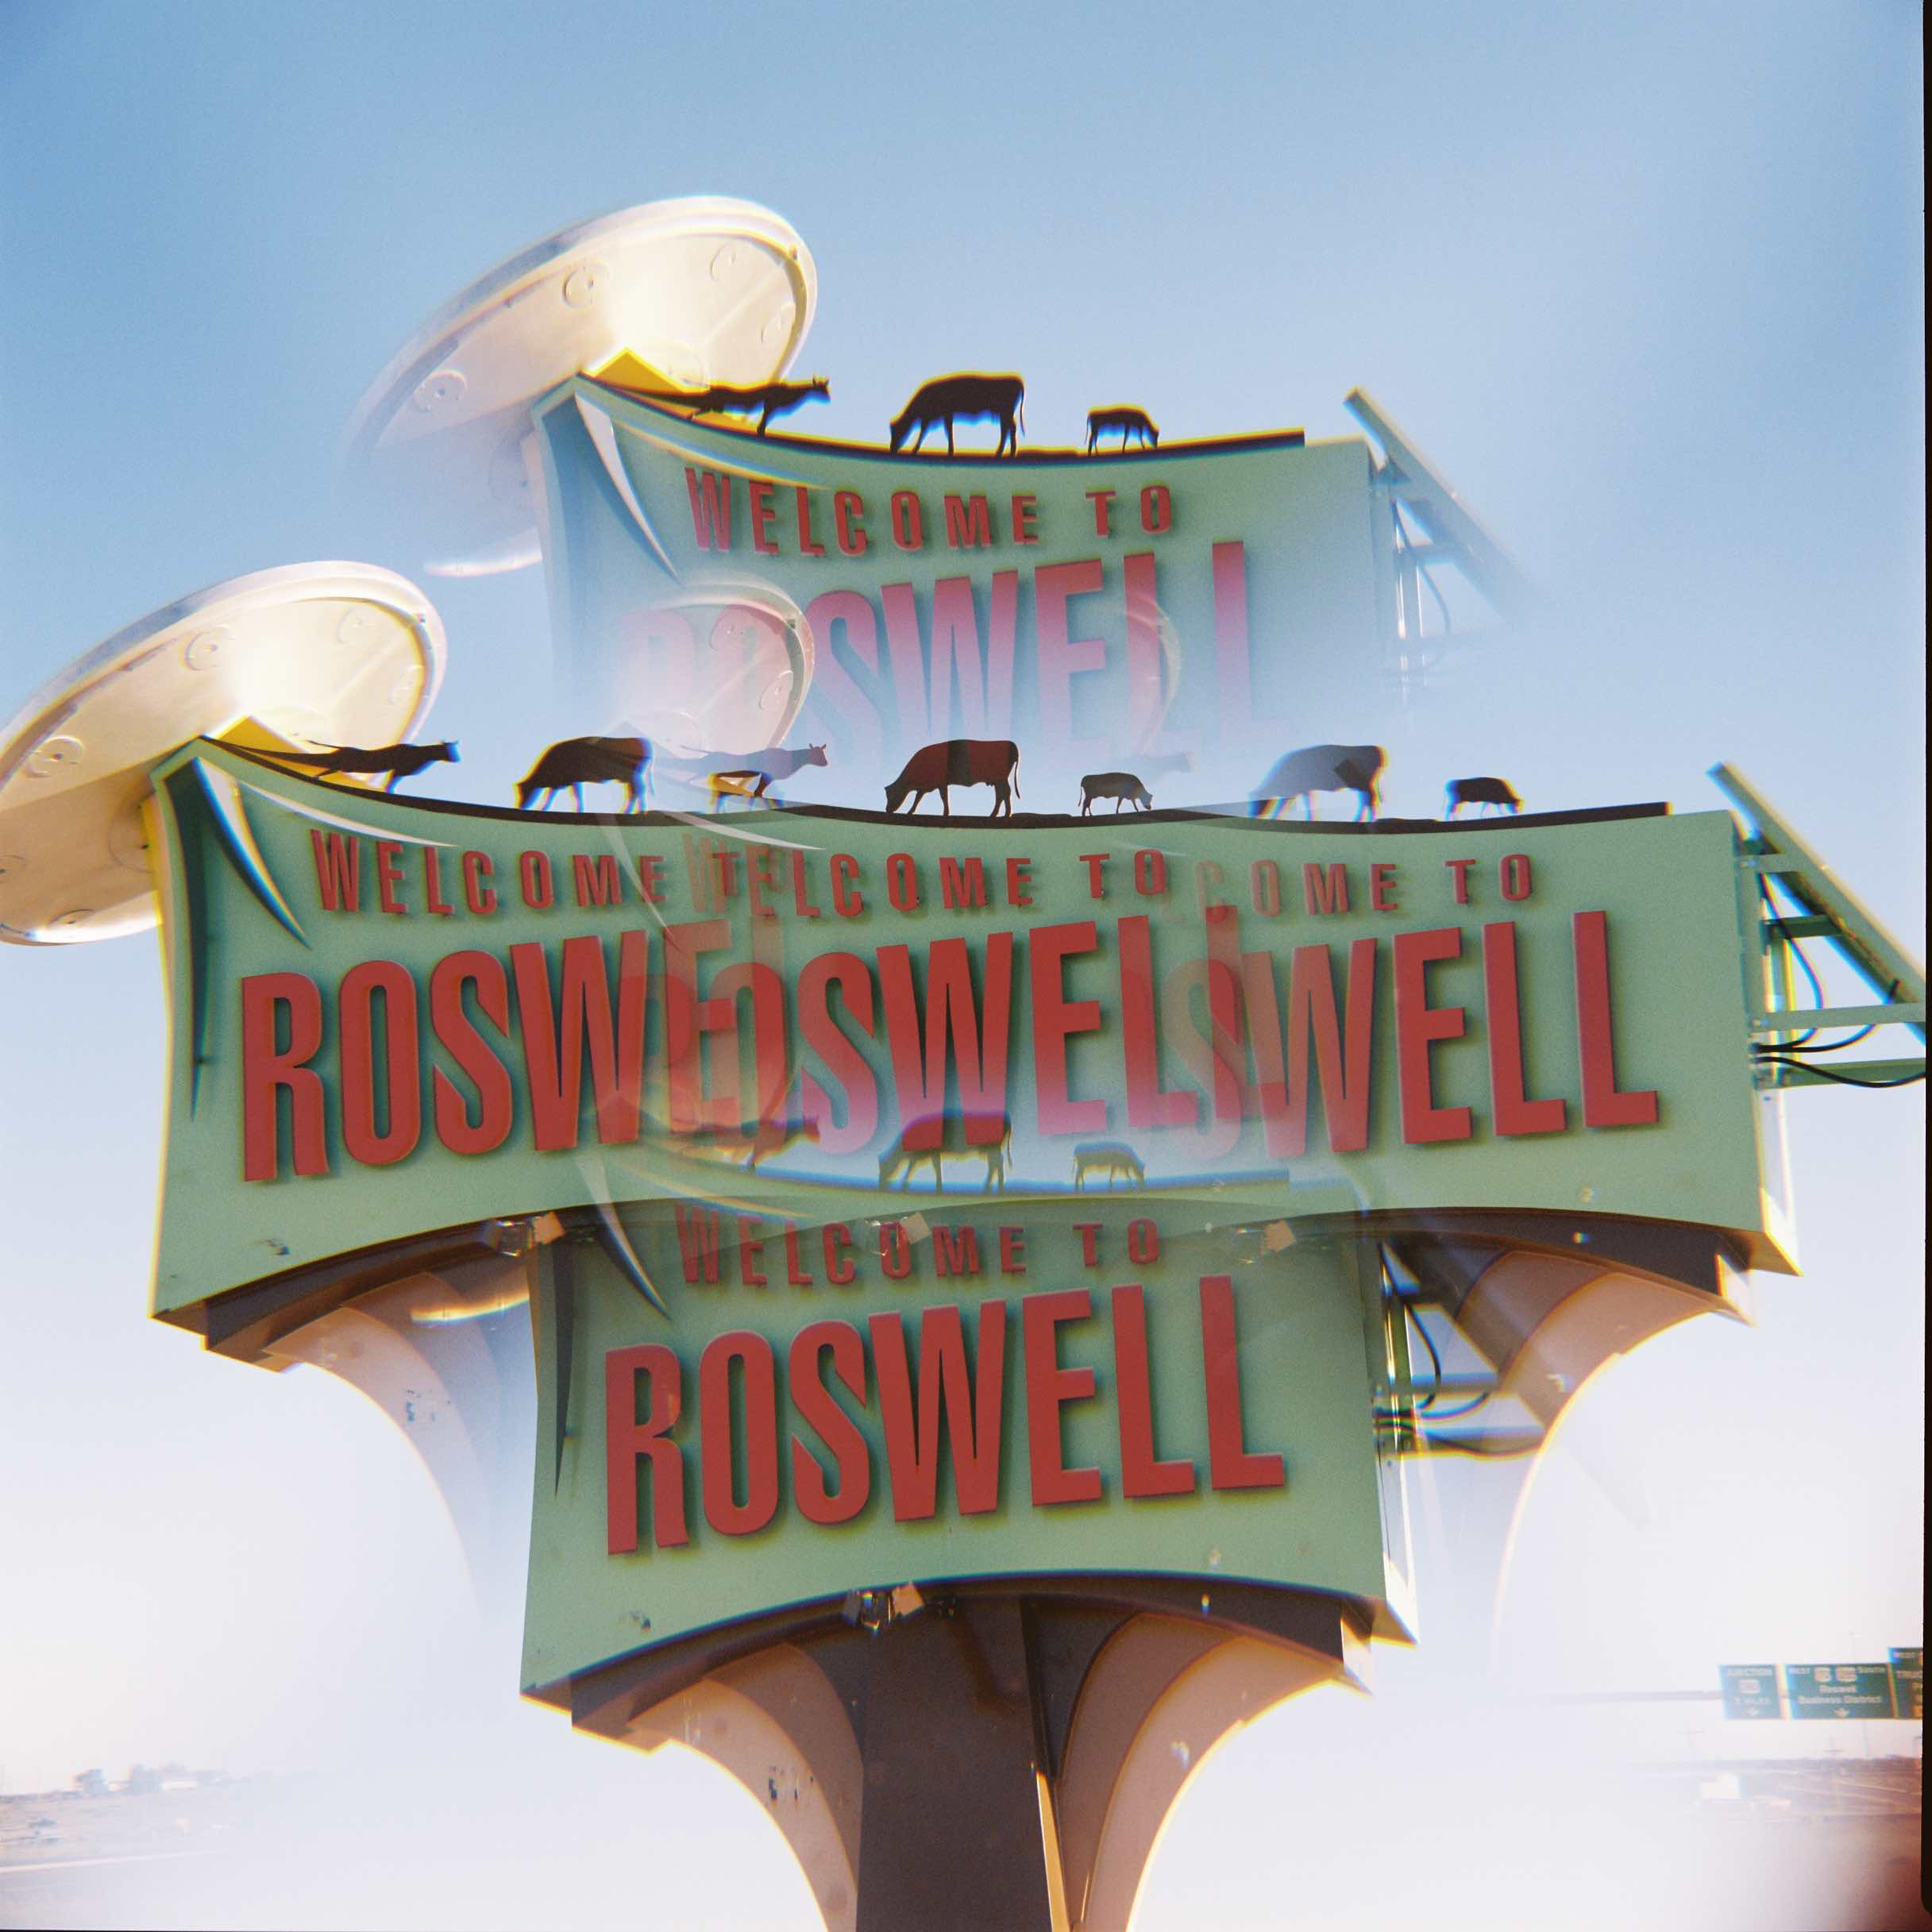 photo - roswell new mexico - welcome sign